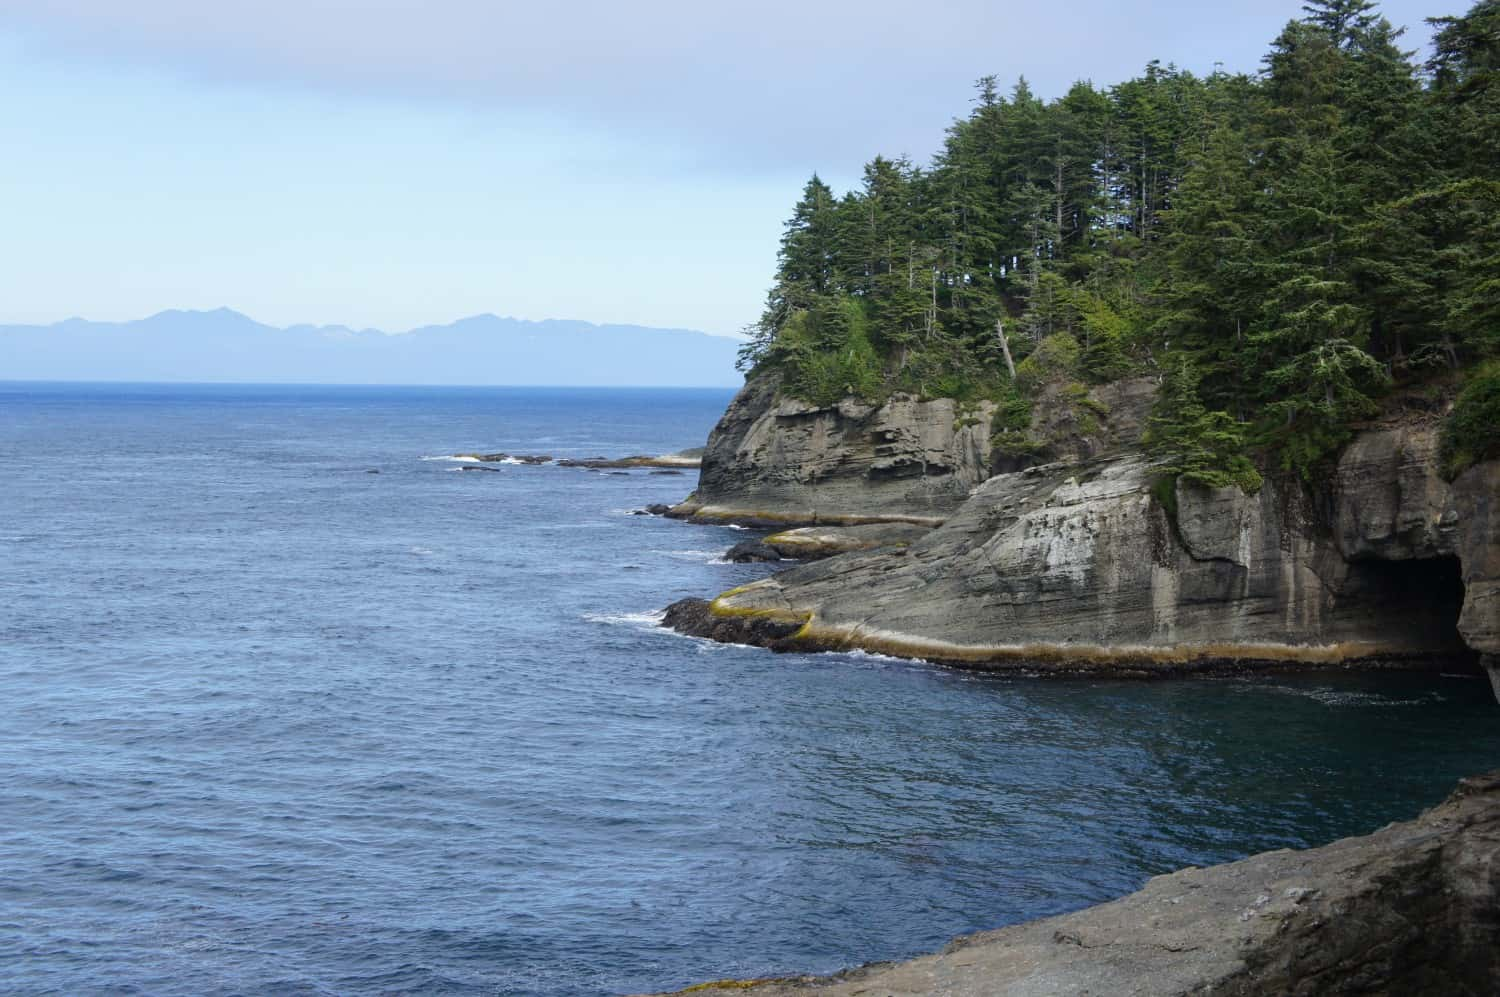 View of the Strait of Juan de Fuca from Cape Flattery, WA